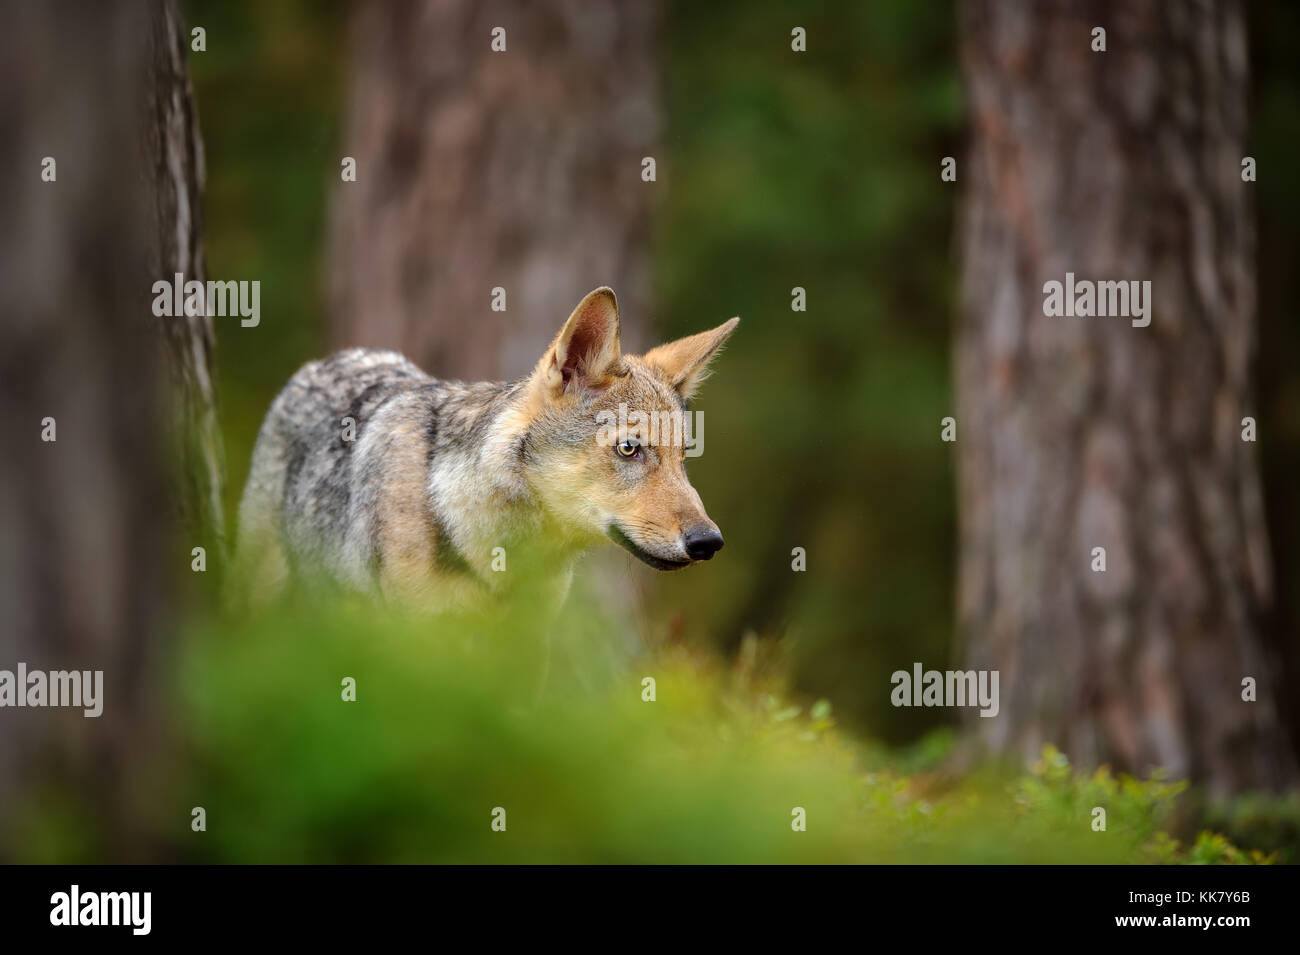 Wolf standing in forest - Stock Image